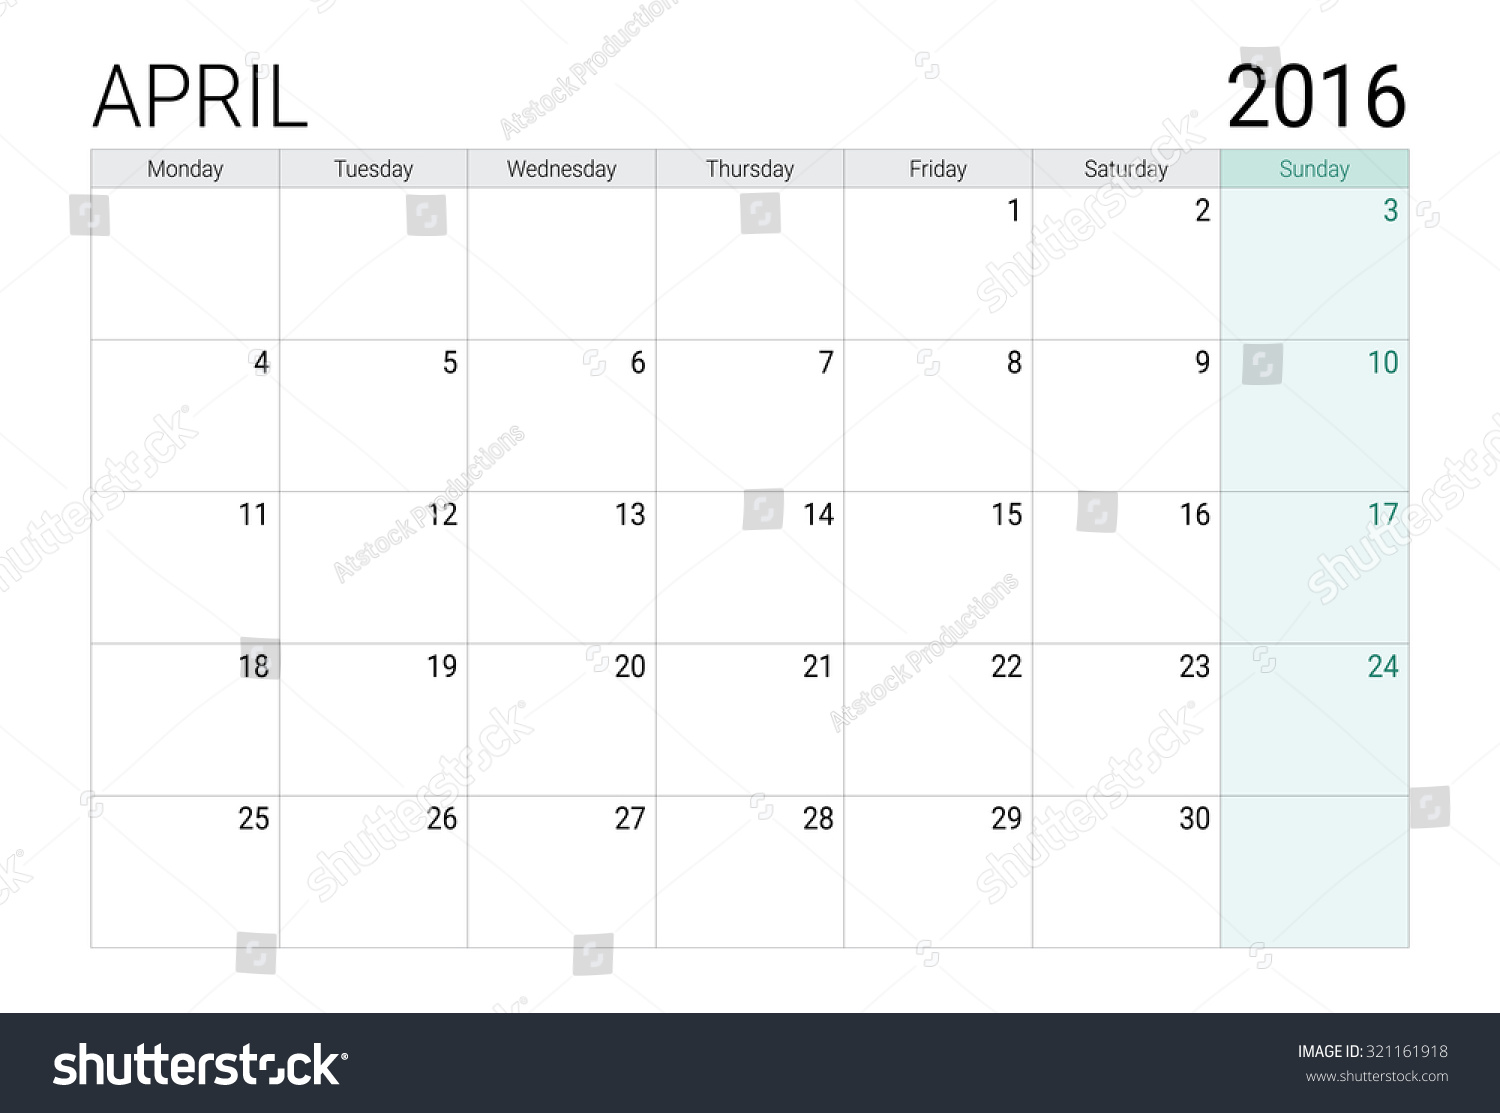 Calendar April Vector : April calendar or desk planner stock vector